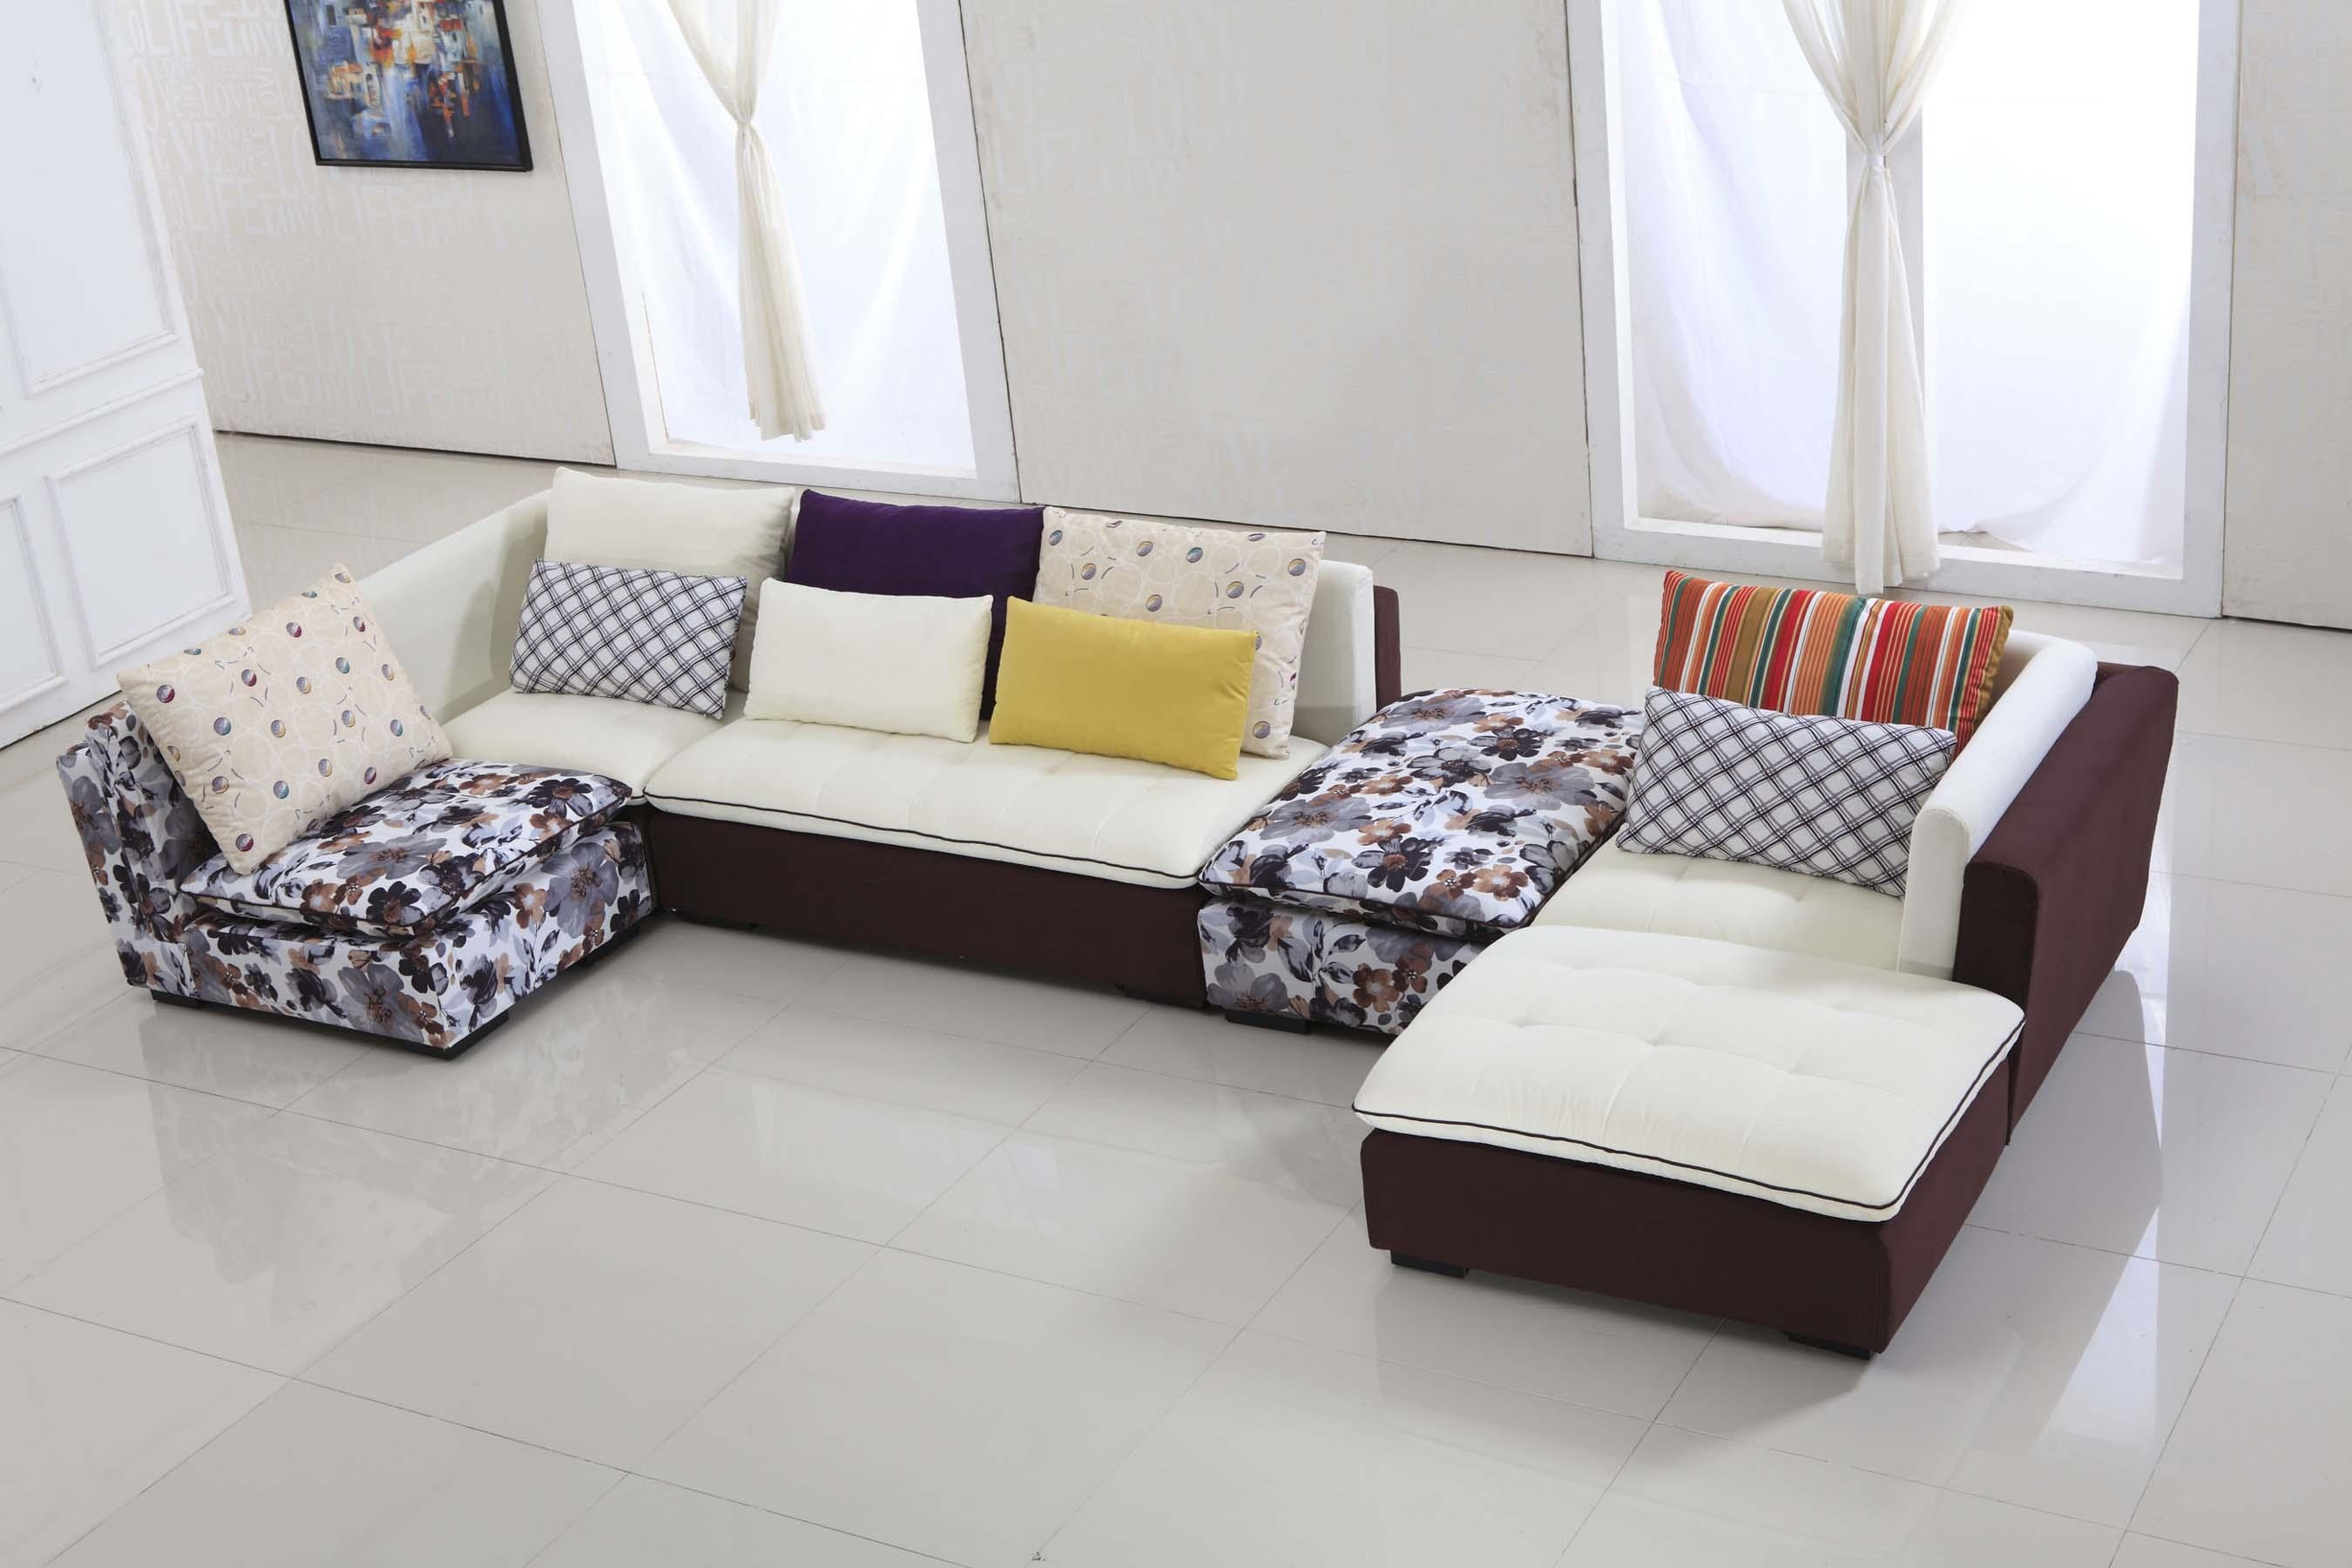 Furniture Unique Modern Brown Fabric Sofa For Living Room The Pertaining To Unique Corner Sofas (View 2 of 21)